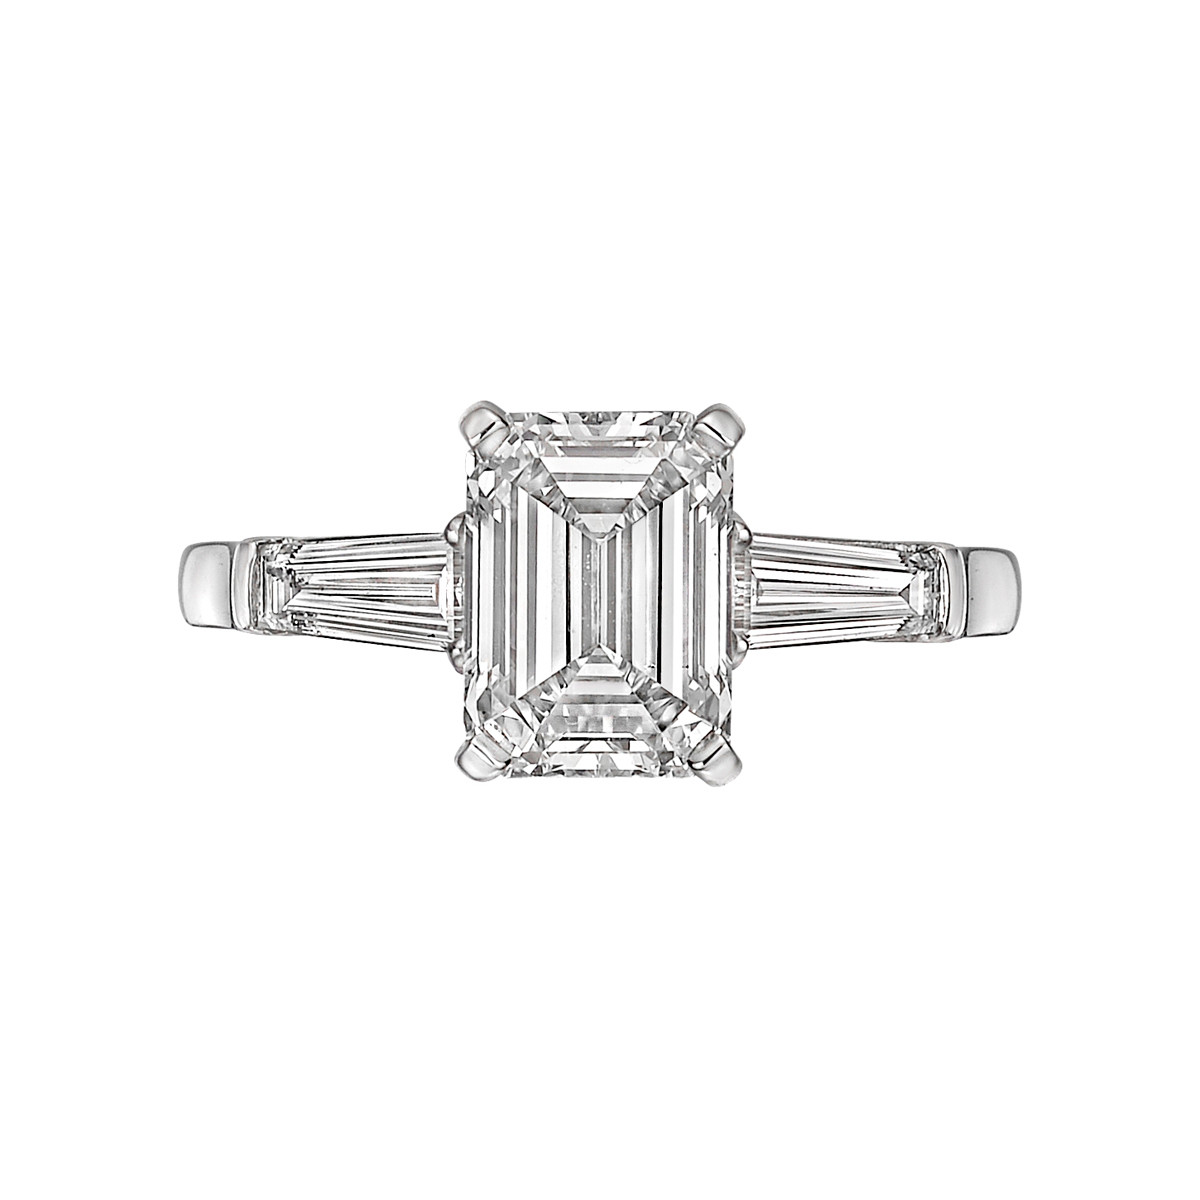 2.01ct Emerald-Cut Diamond Ring (H/VS2)